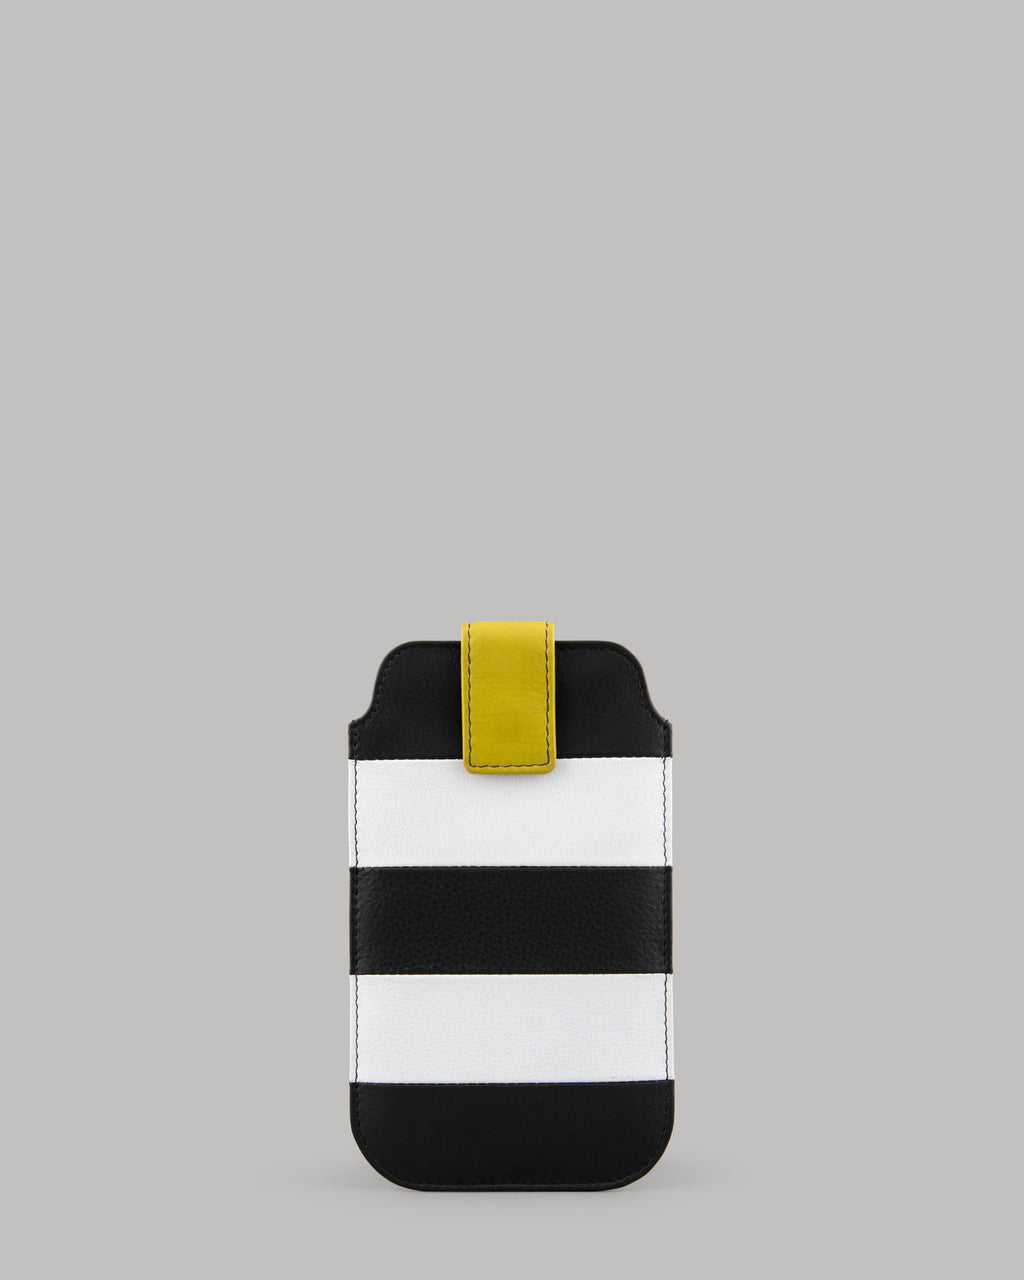 Marty Monocrome Stripe Black Leather Mobile Phone Case Yoshi